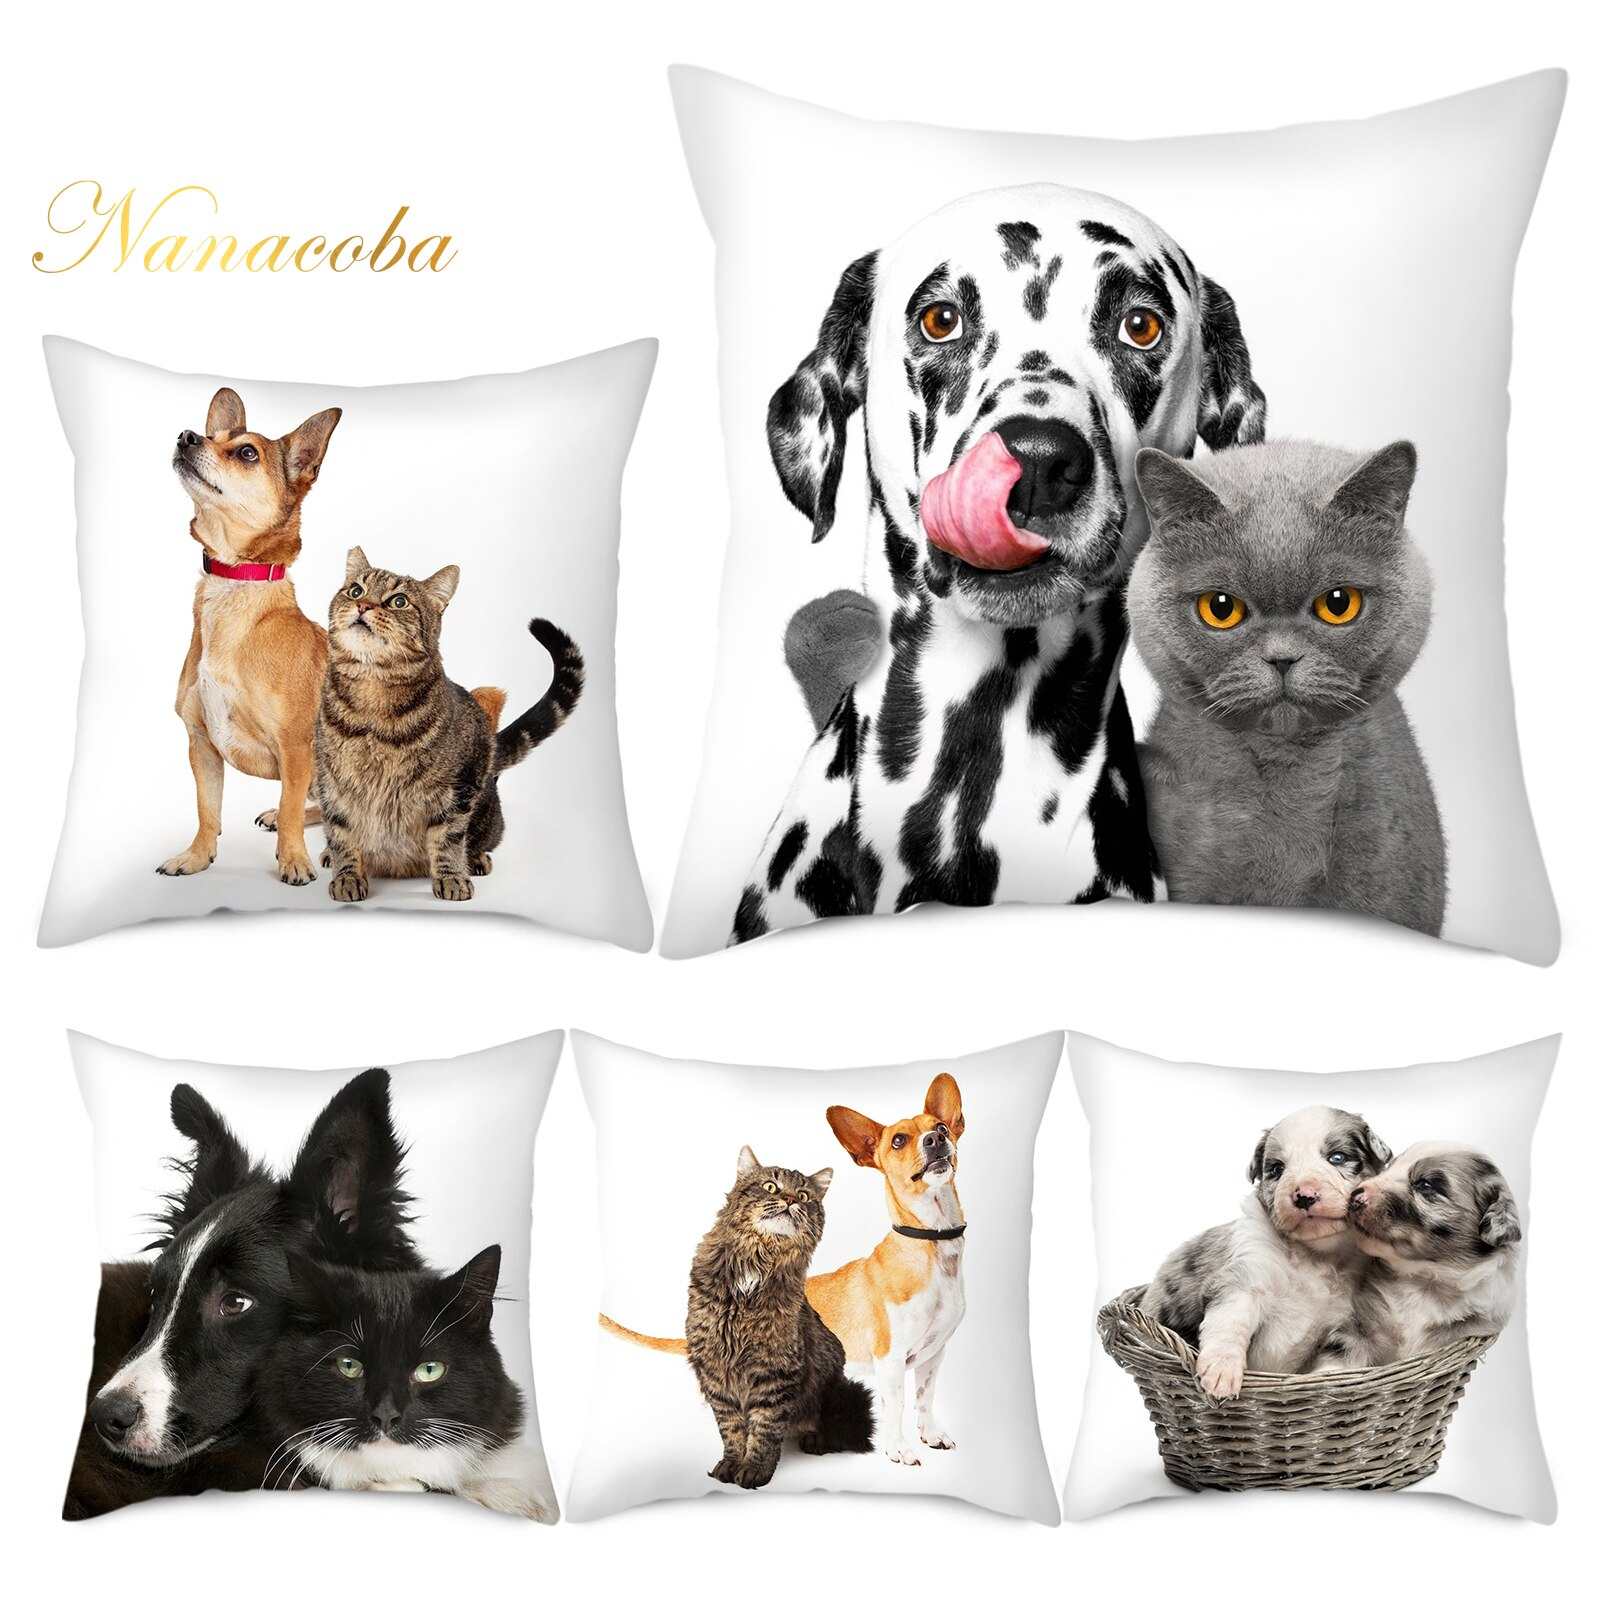 Cute Pet Cat And Dog Getting Along Well Decorative Animal Cushion Cover Sofa Home Couch Pillows Case Living Room Decoration